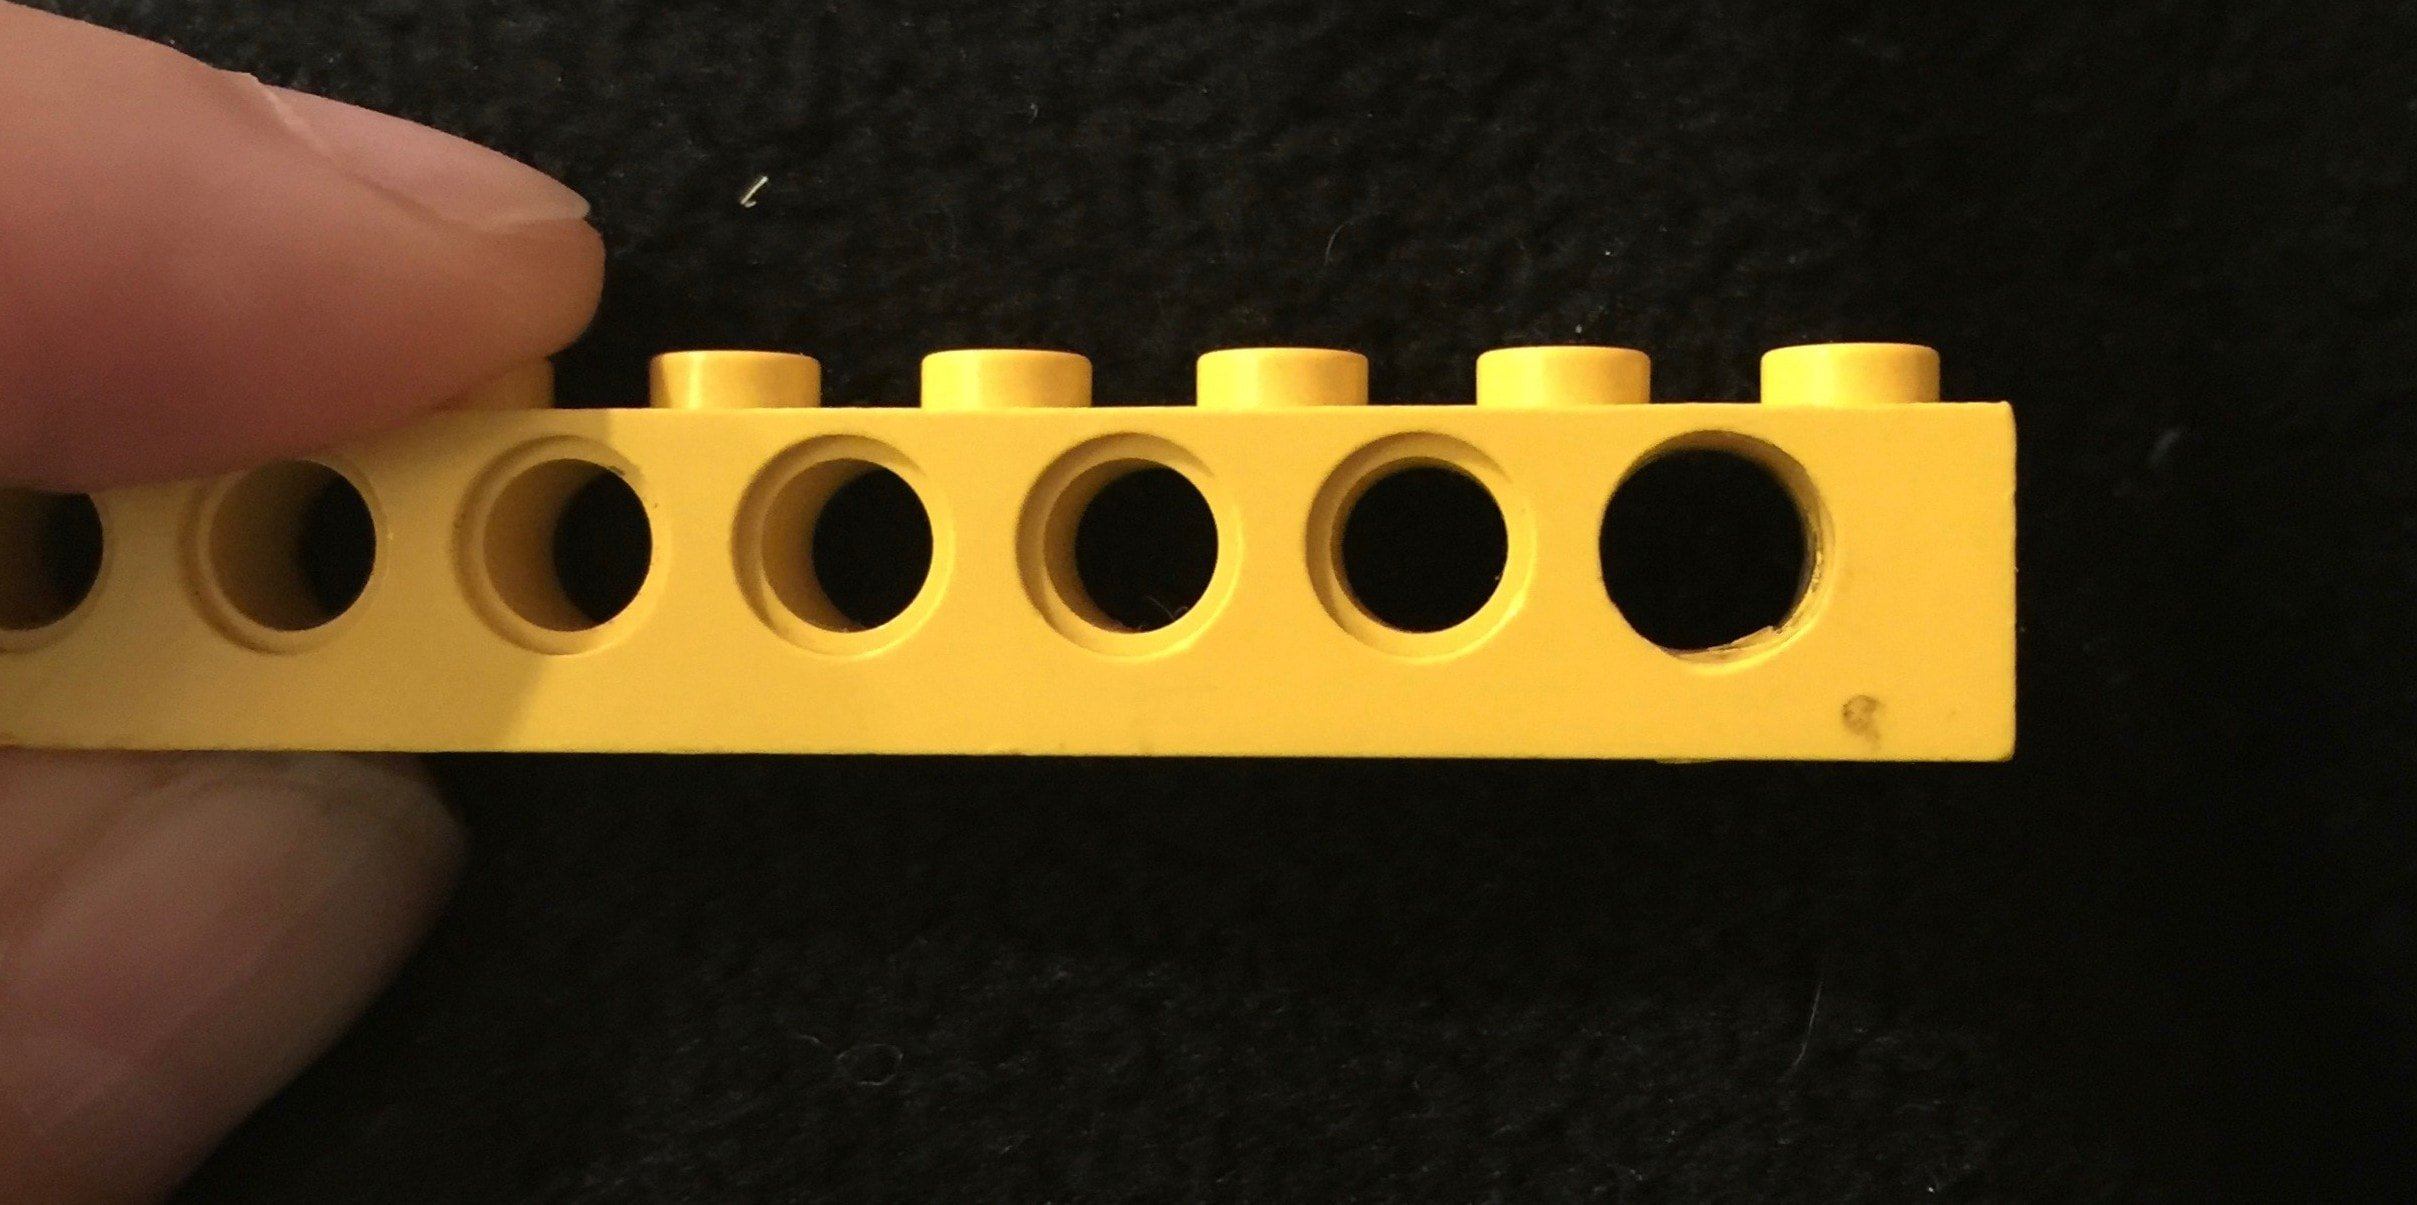 Alt Text: A photograph of a one-by-eight yellow lego piece held by a thumb and forefinger. The background is black. The piece has a series of holes in the side. The final hole has been drilled out to make it slightly larger than the others.